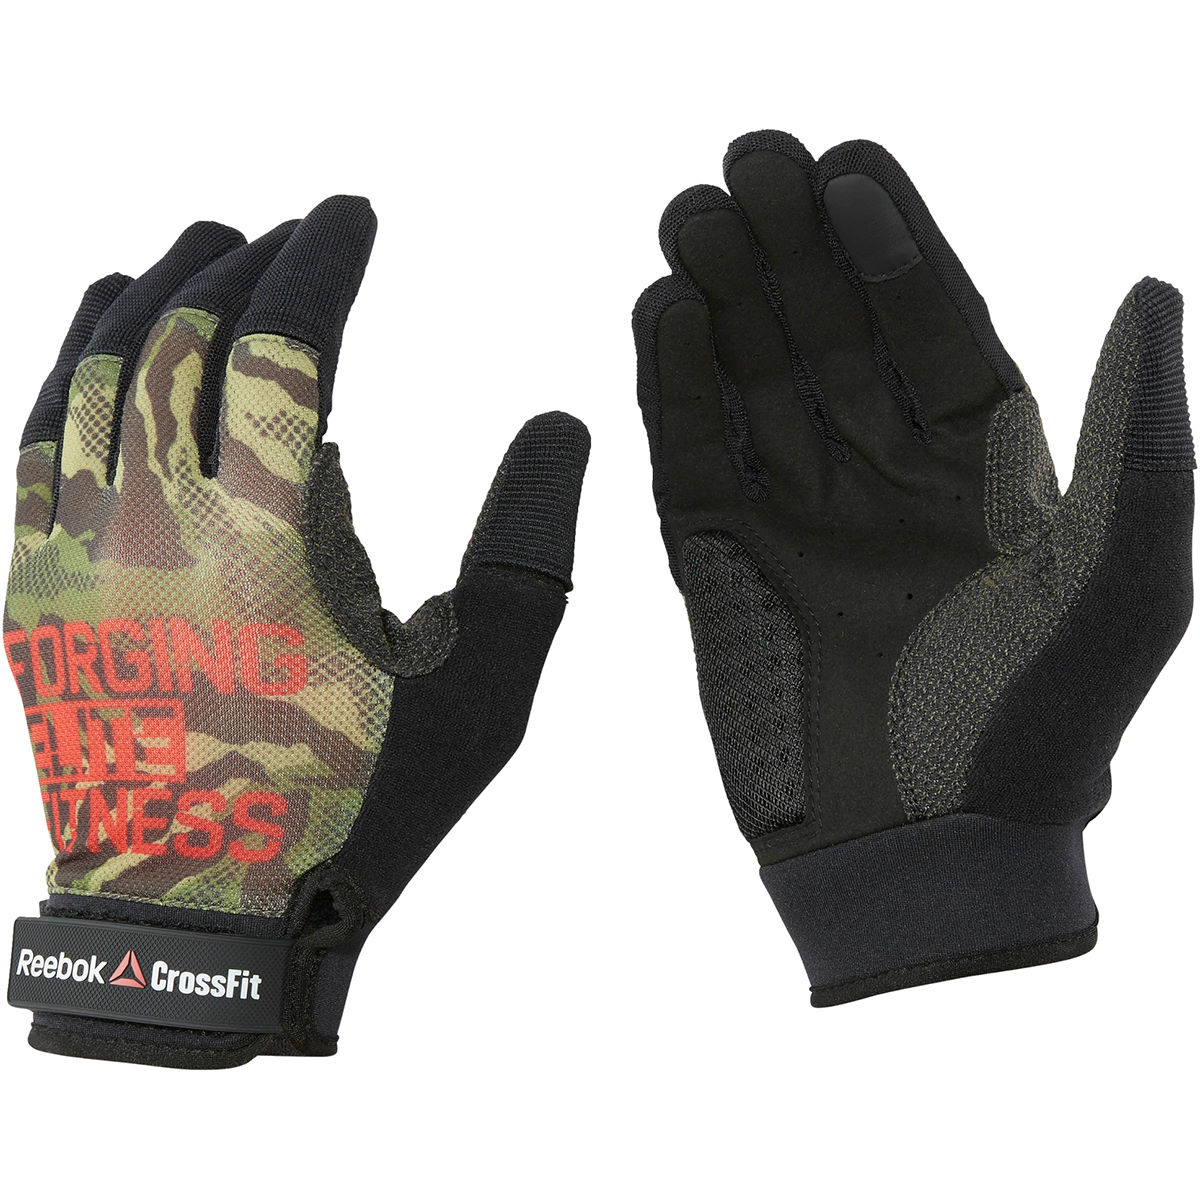 Reebok Crossfit Training Gloves